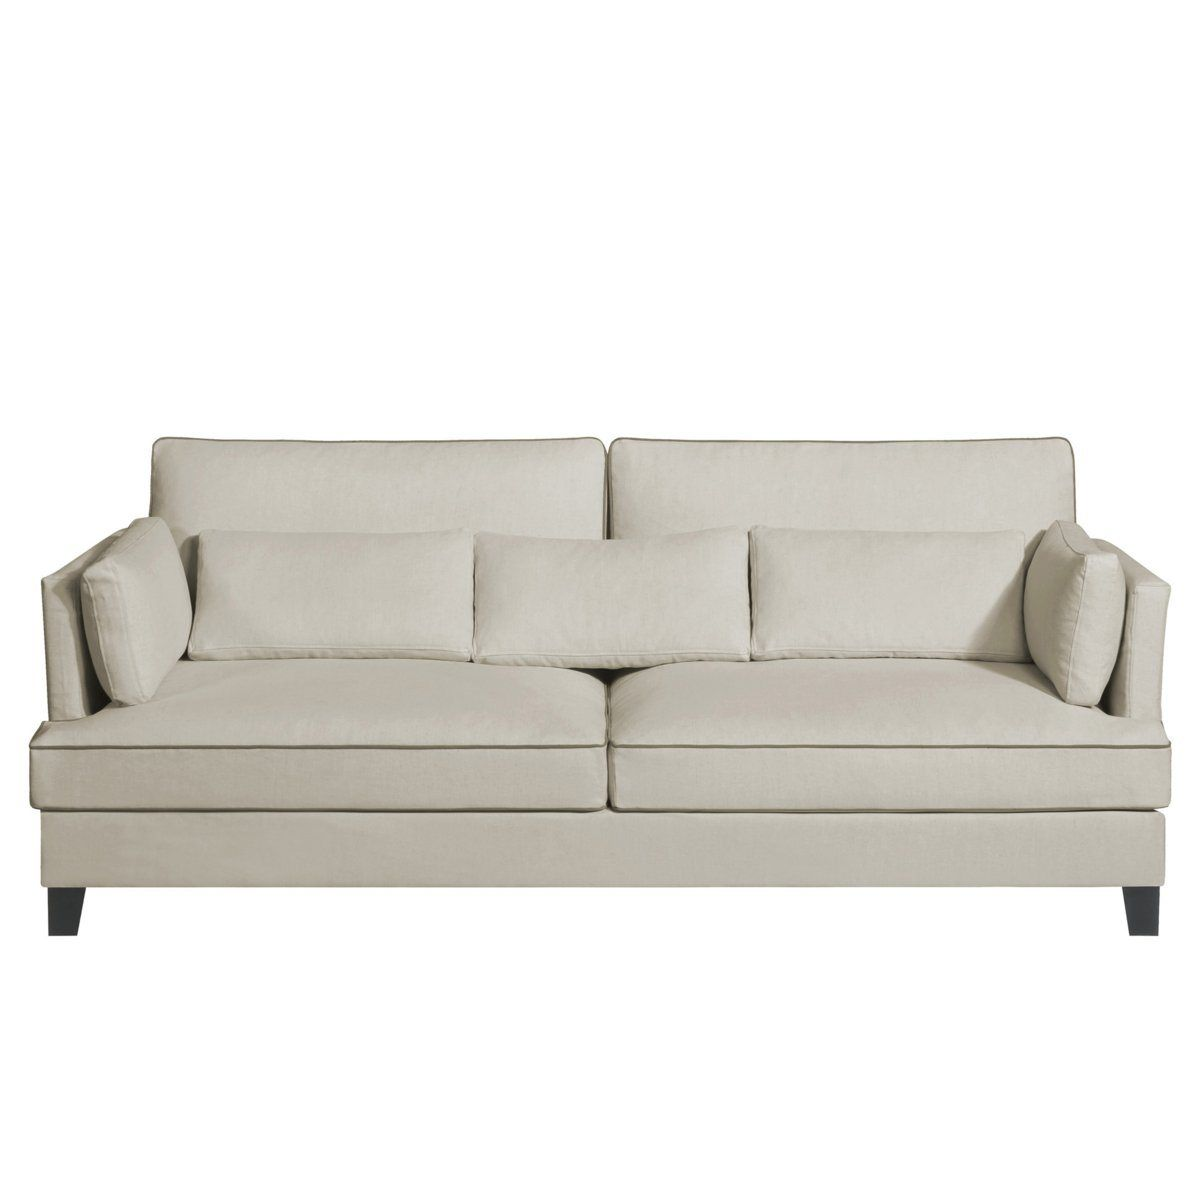 Couche En Coton Canapé Sacha Coton Lin Am Pm Fractional Sofa Couch Furniture